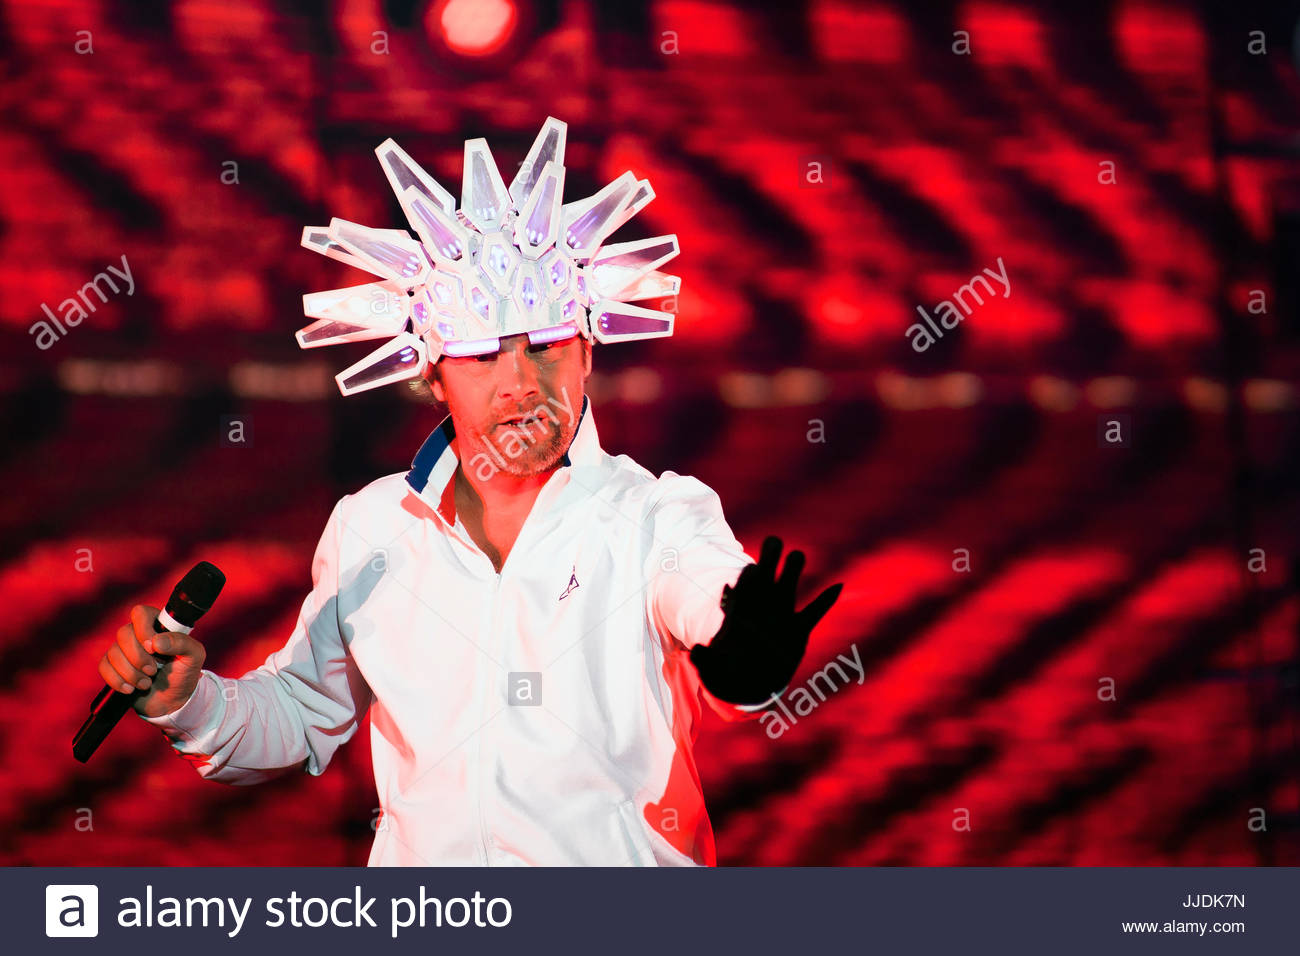 Jamiroquai (singer Jay Kay) performing live at Musilac summer festival in Aix les Bains, France. 16th July, 2017 - Stock Image